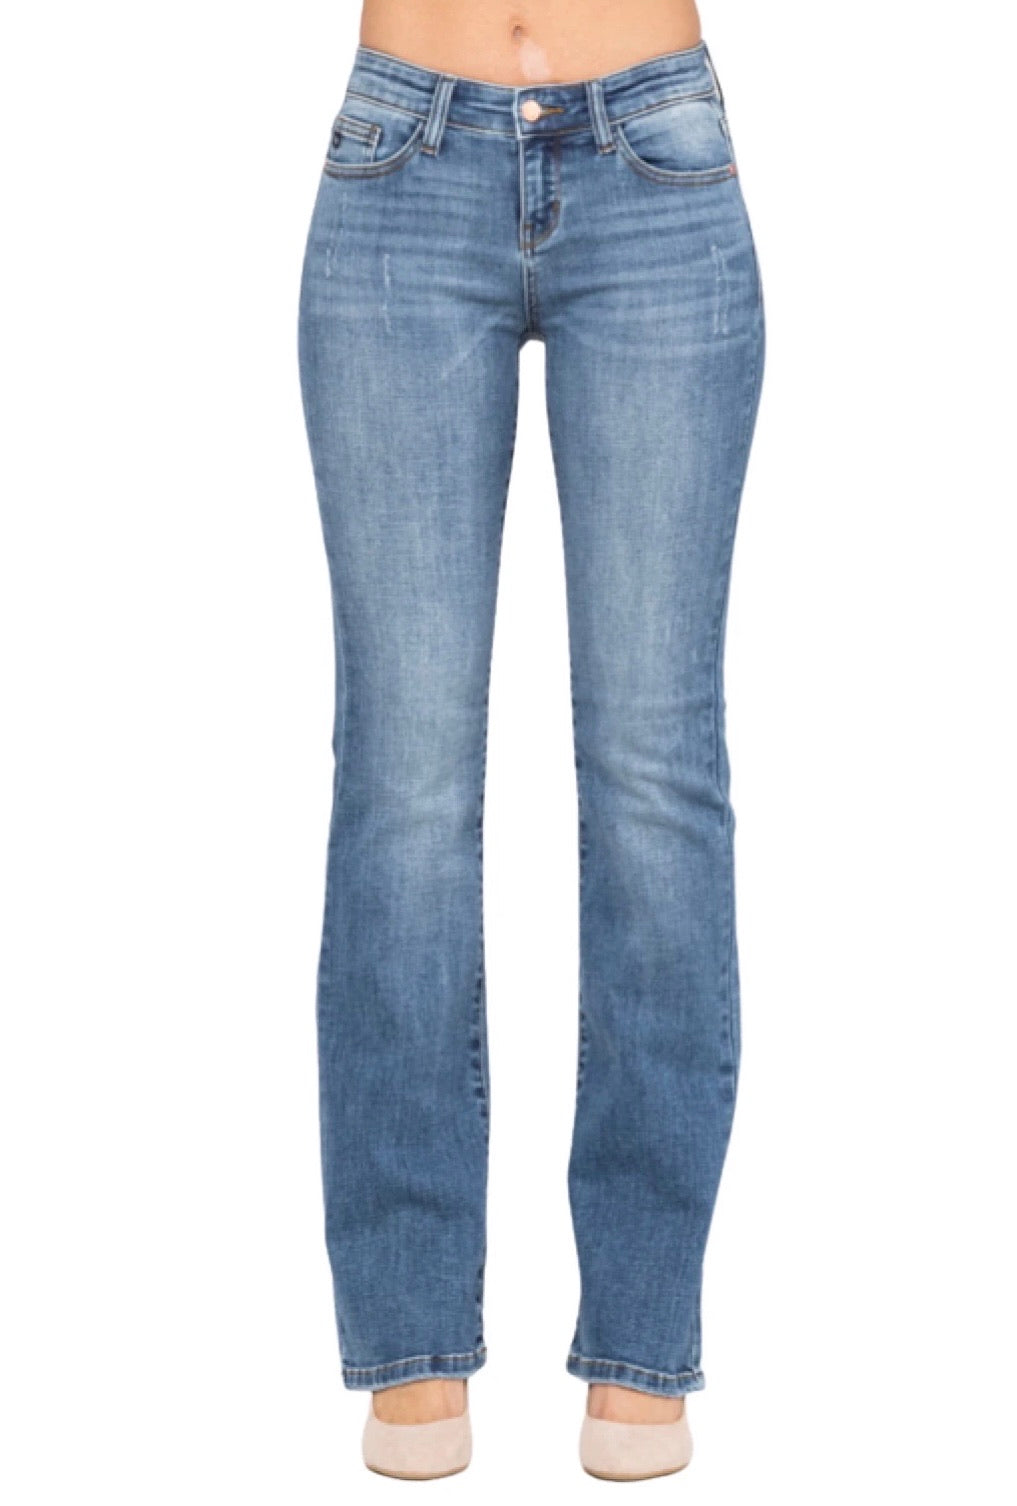 Judy Blue Medium Boot Cut Jeans